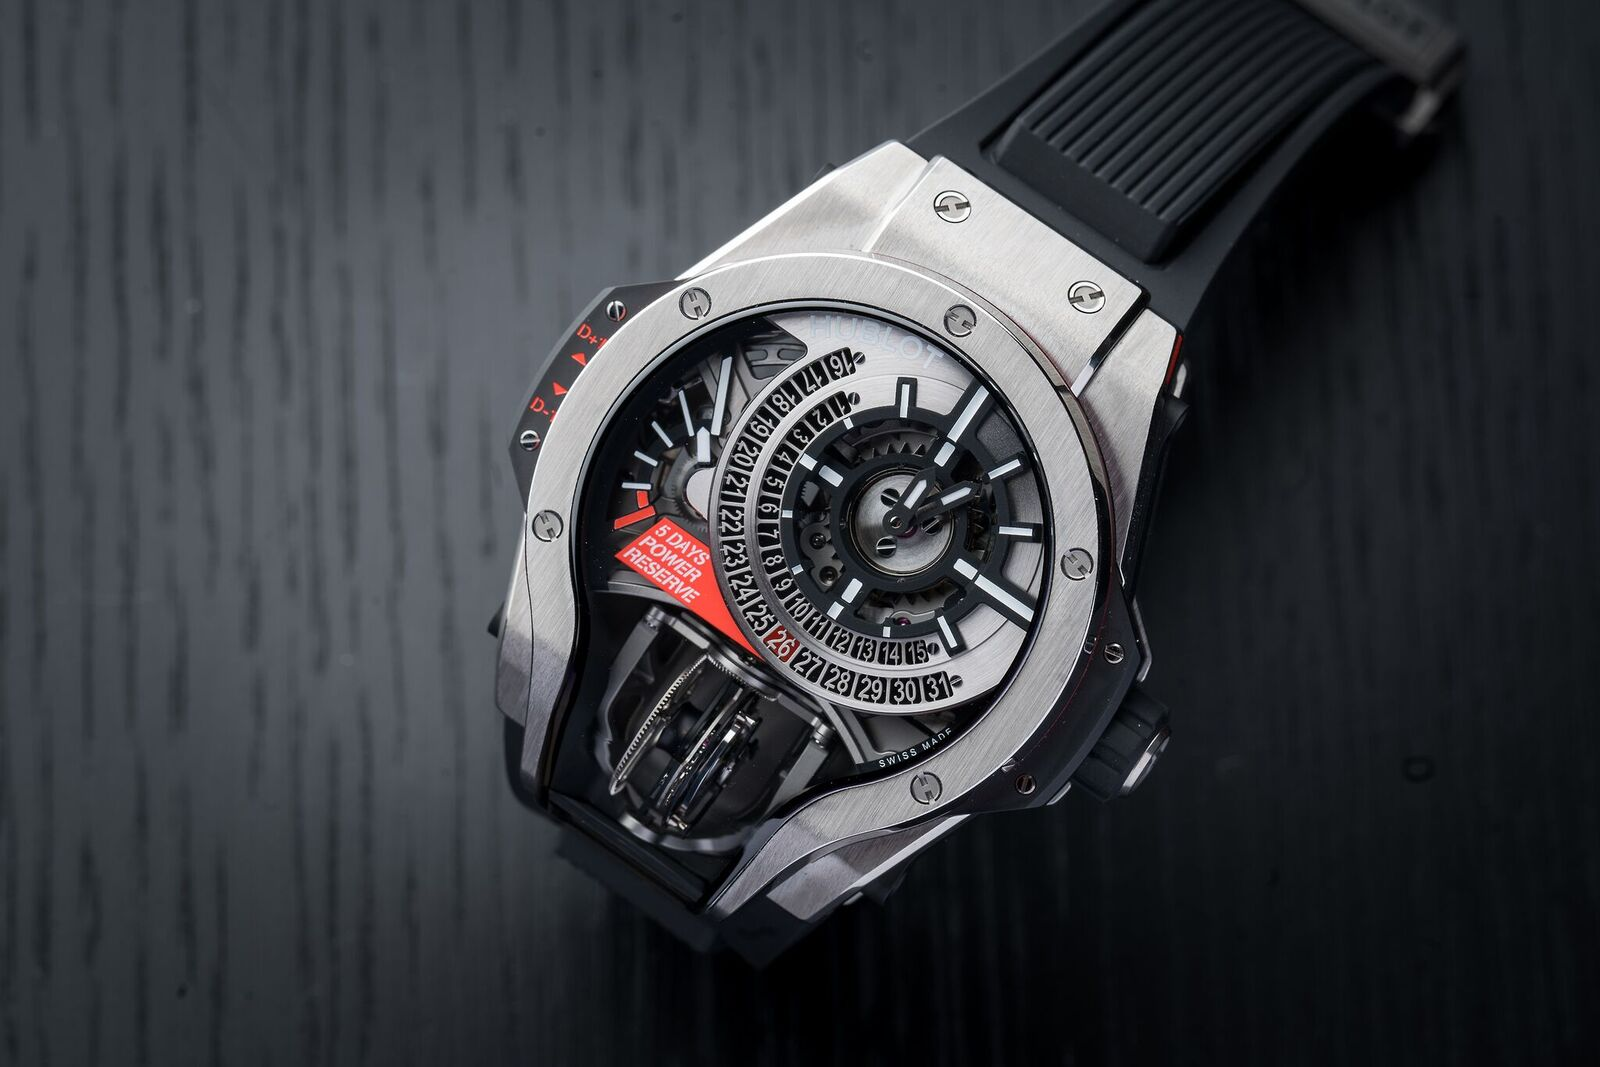 With the Hublot MP-09 Tourbillon Bi-Axis the multi-axis tourbillon is perfectly integrated in the overall design of the watch.